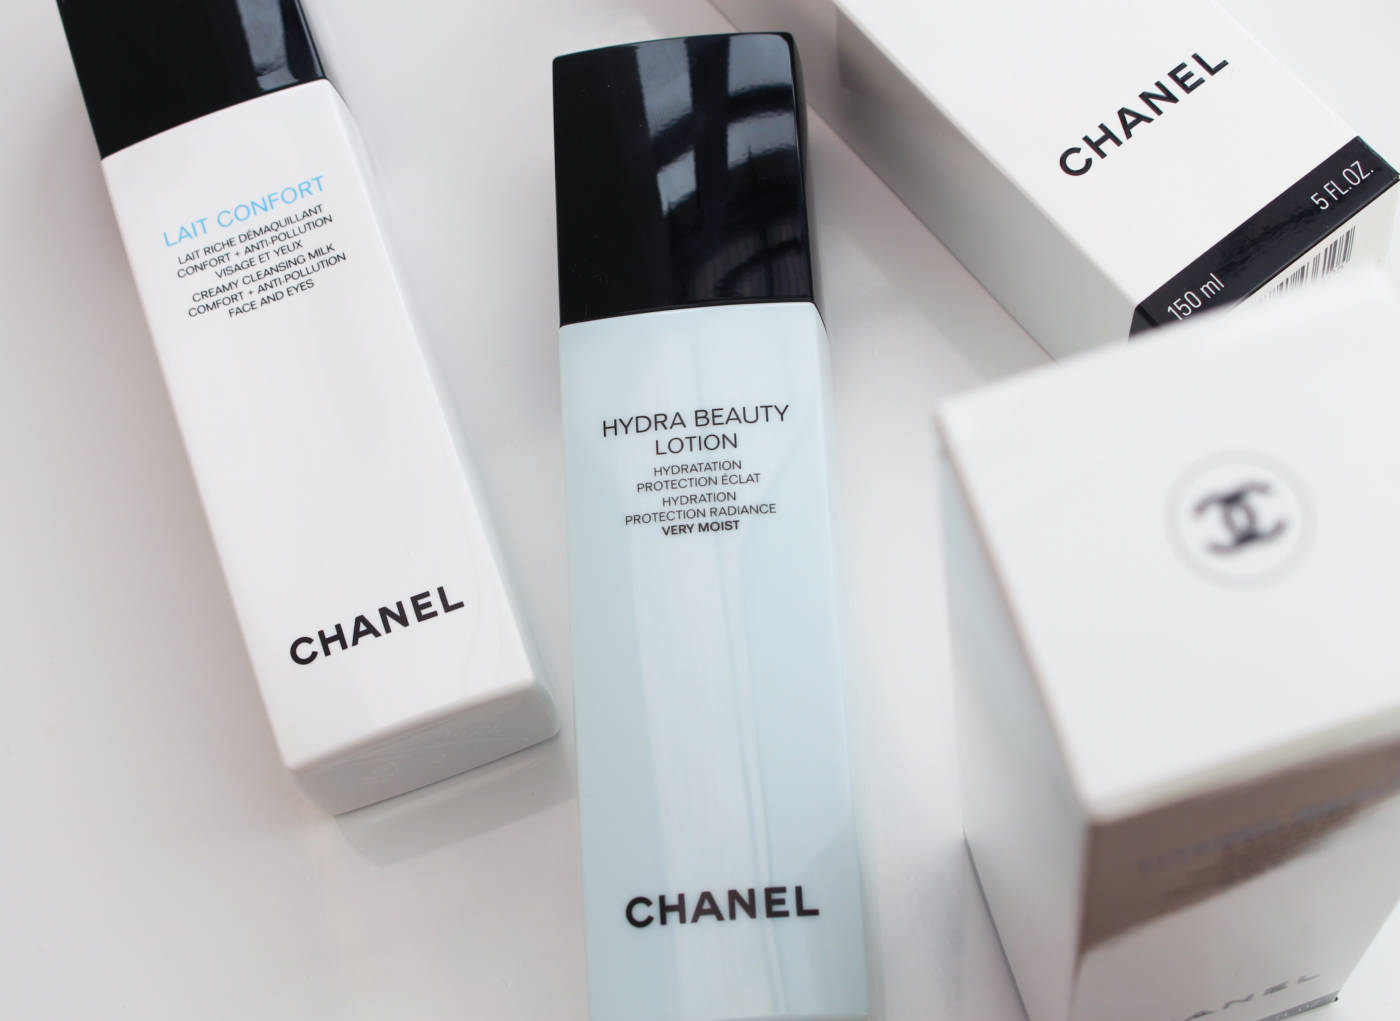 chanel-hydra-beauty.jpg